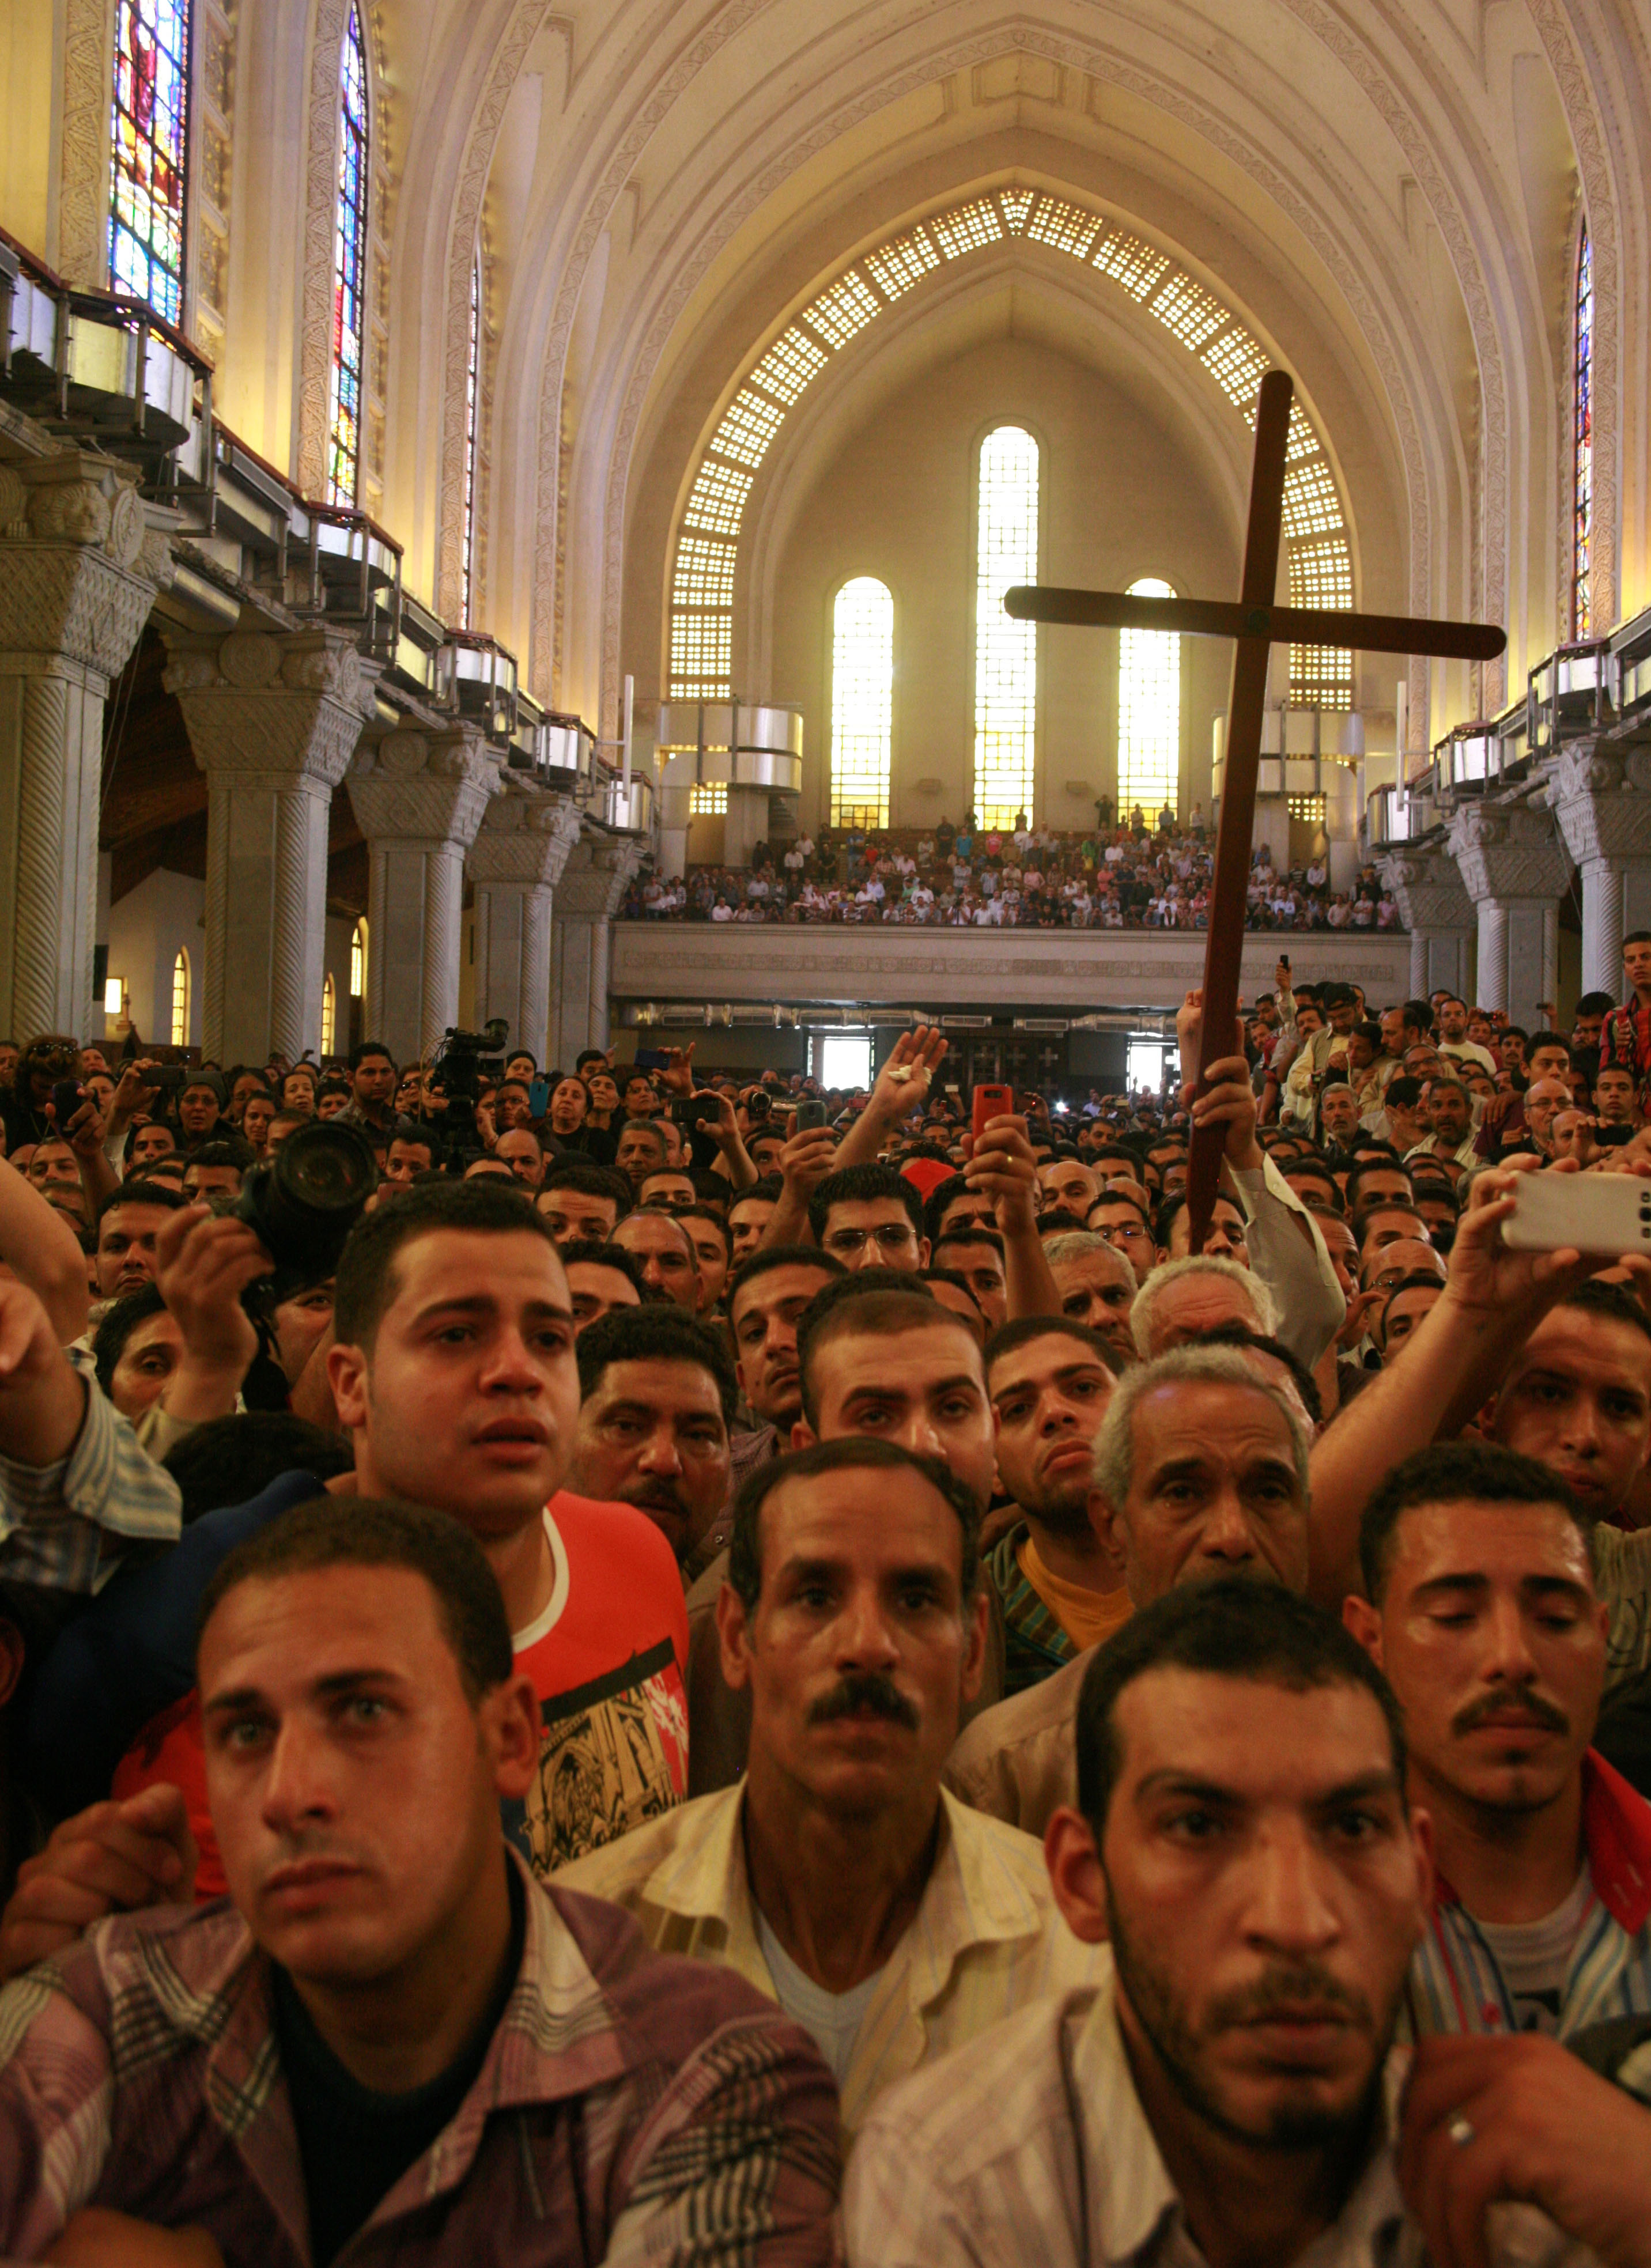 Christian Killed in Attack on Coptic Mourners in Egypt ... | 2865 x 3936 jpeg 1474kB